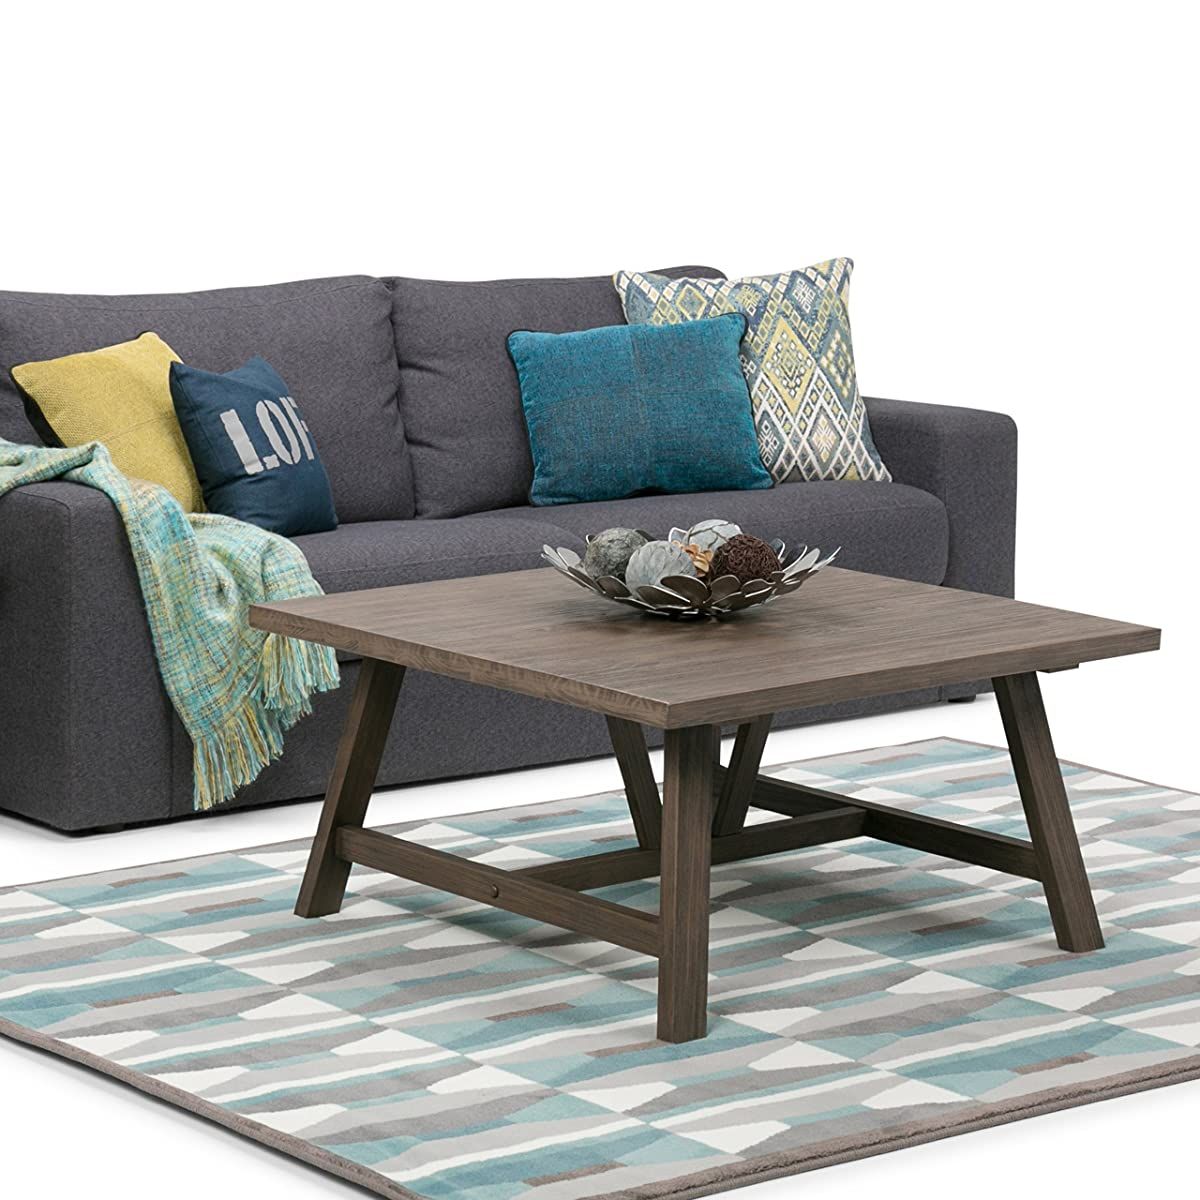 Simpli Home Dylan Solid Wood Square Coffee Table, Driftwood